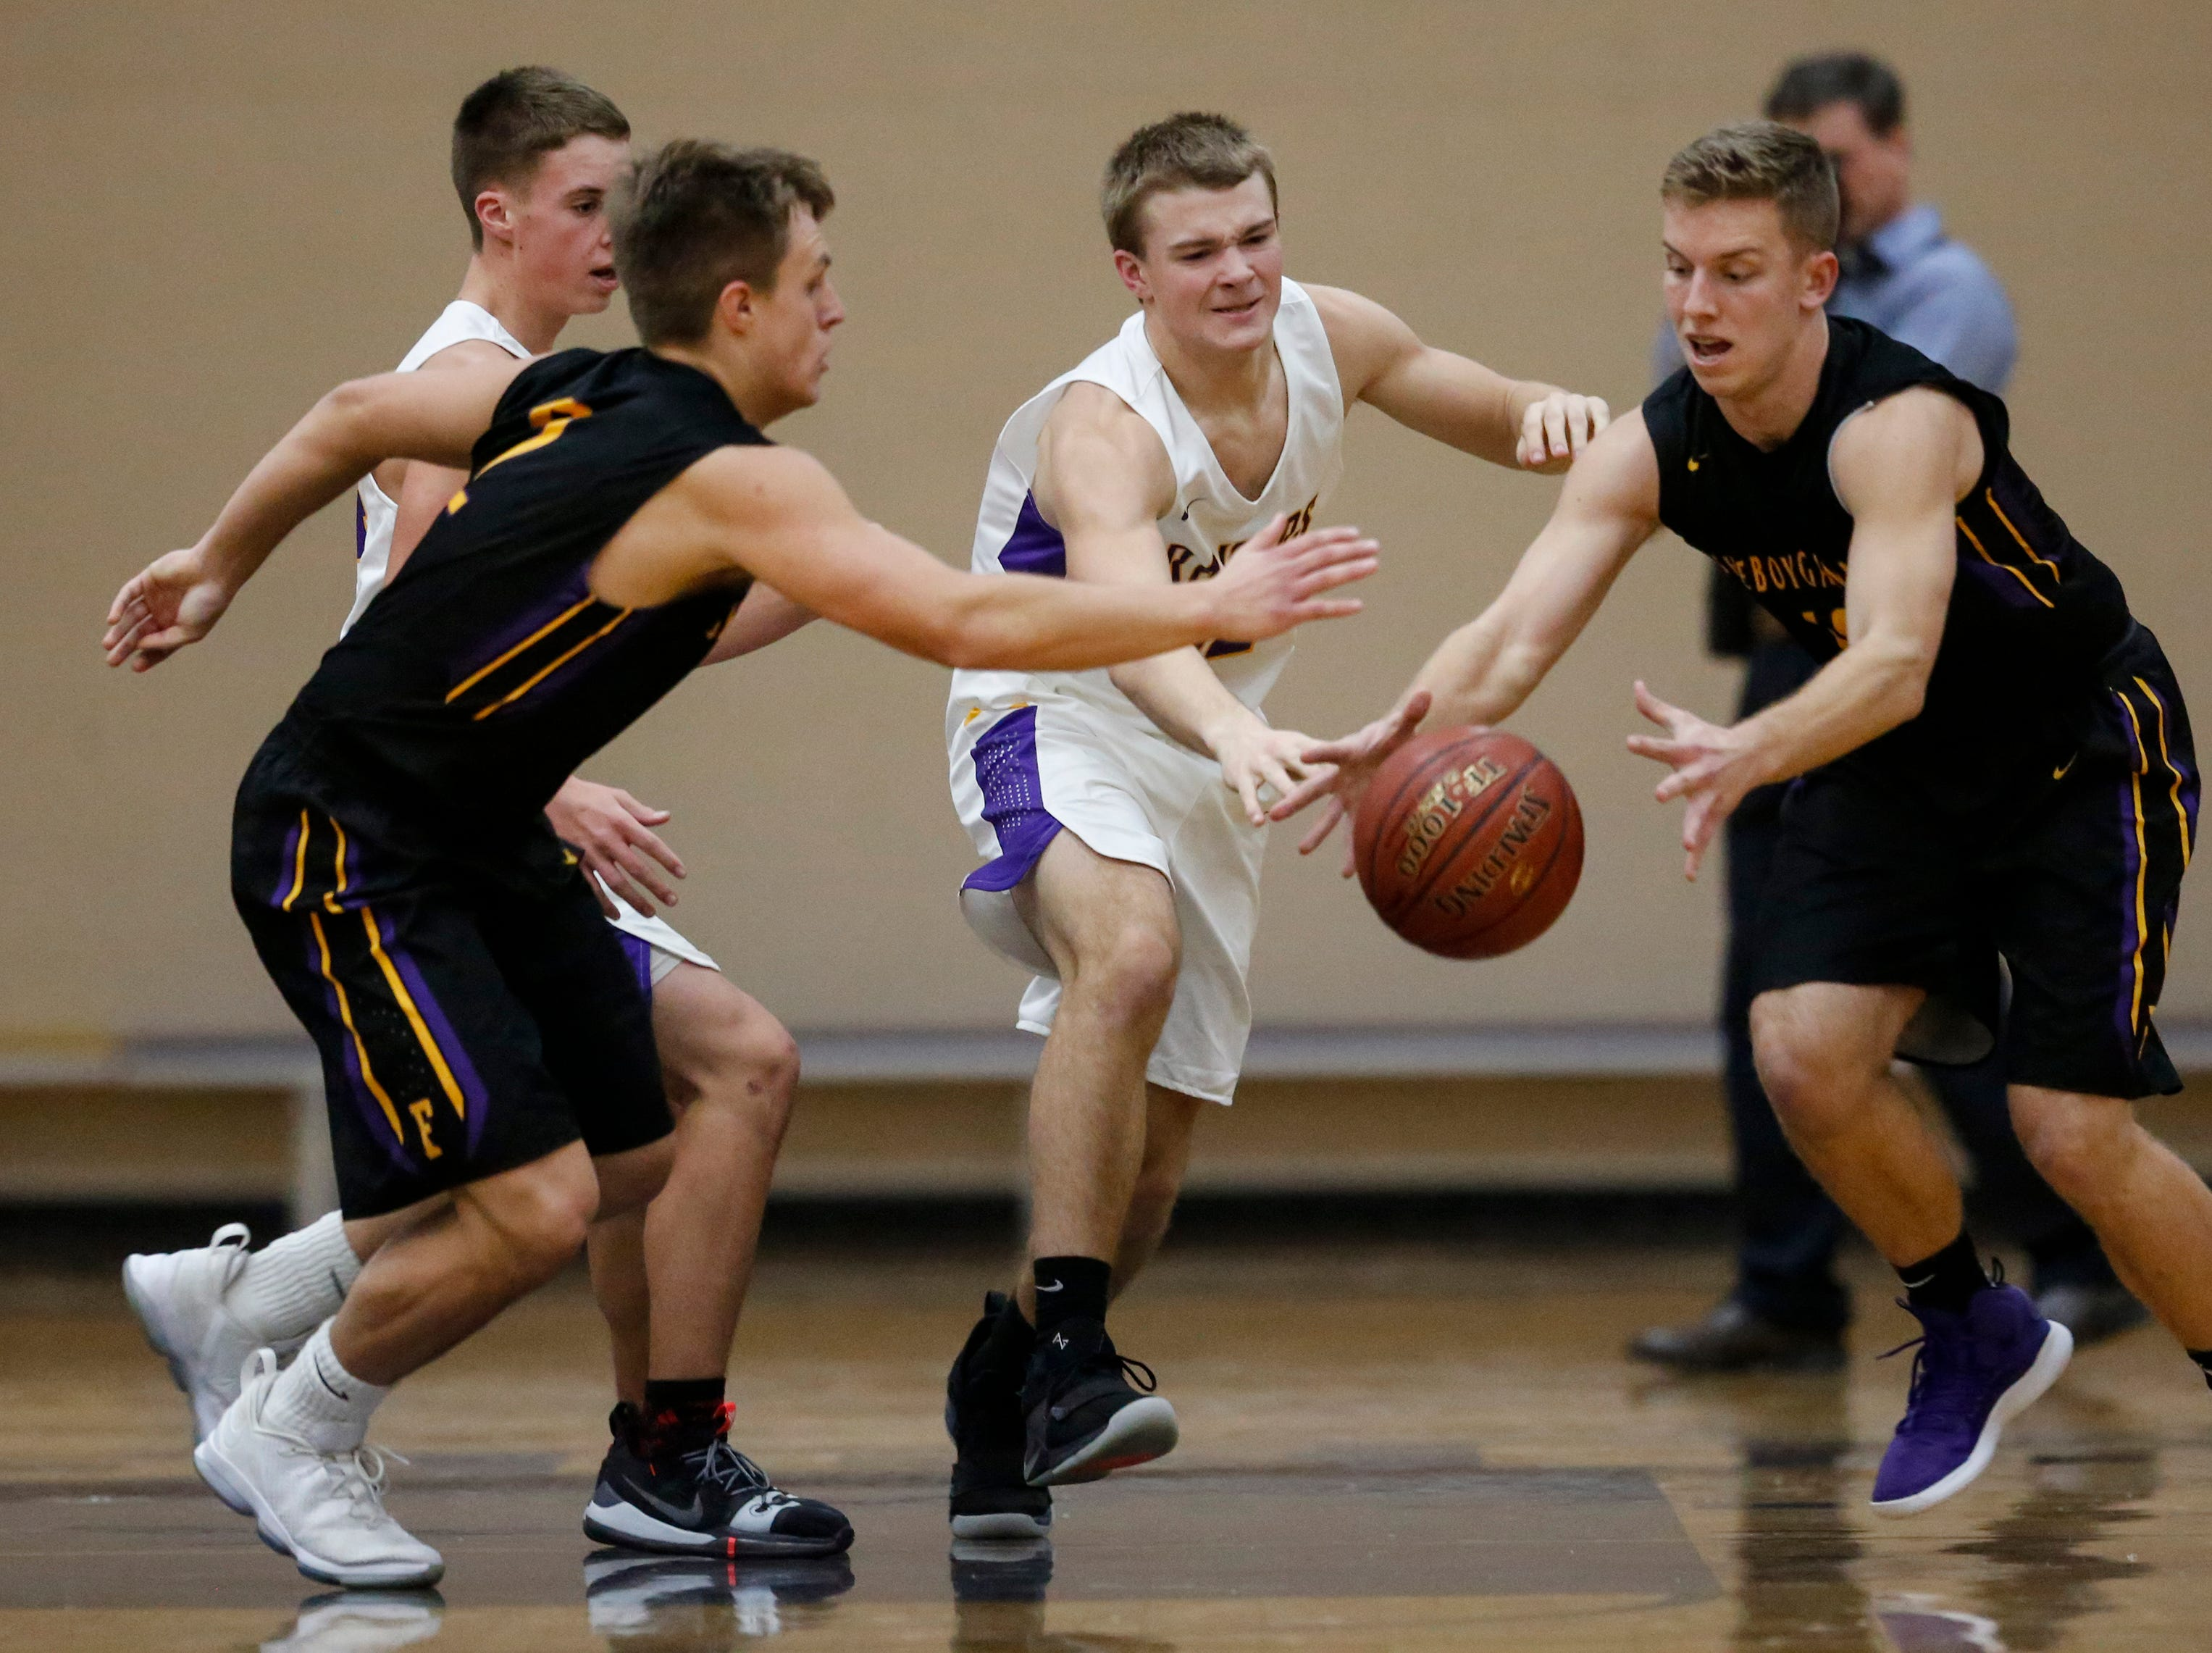 Two Rivers' Wilhelm Schmid (12) battles Sheboygan Falls' Alex Schmitt, left, and Langdon Thiel for a rebound during an Eastern Wisconsin Conference game at Two Rivers High School Tuesday, December 4, 2018, in Two Rivers, Wis. Joshua Clark/USA TODAY NETWORK-Wisconsin